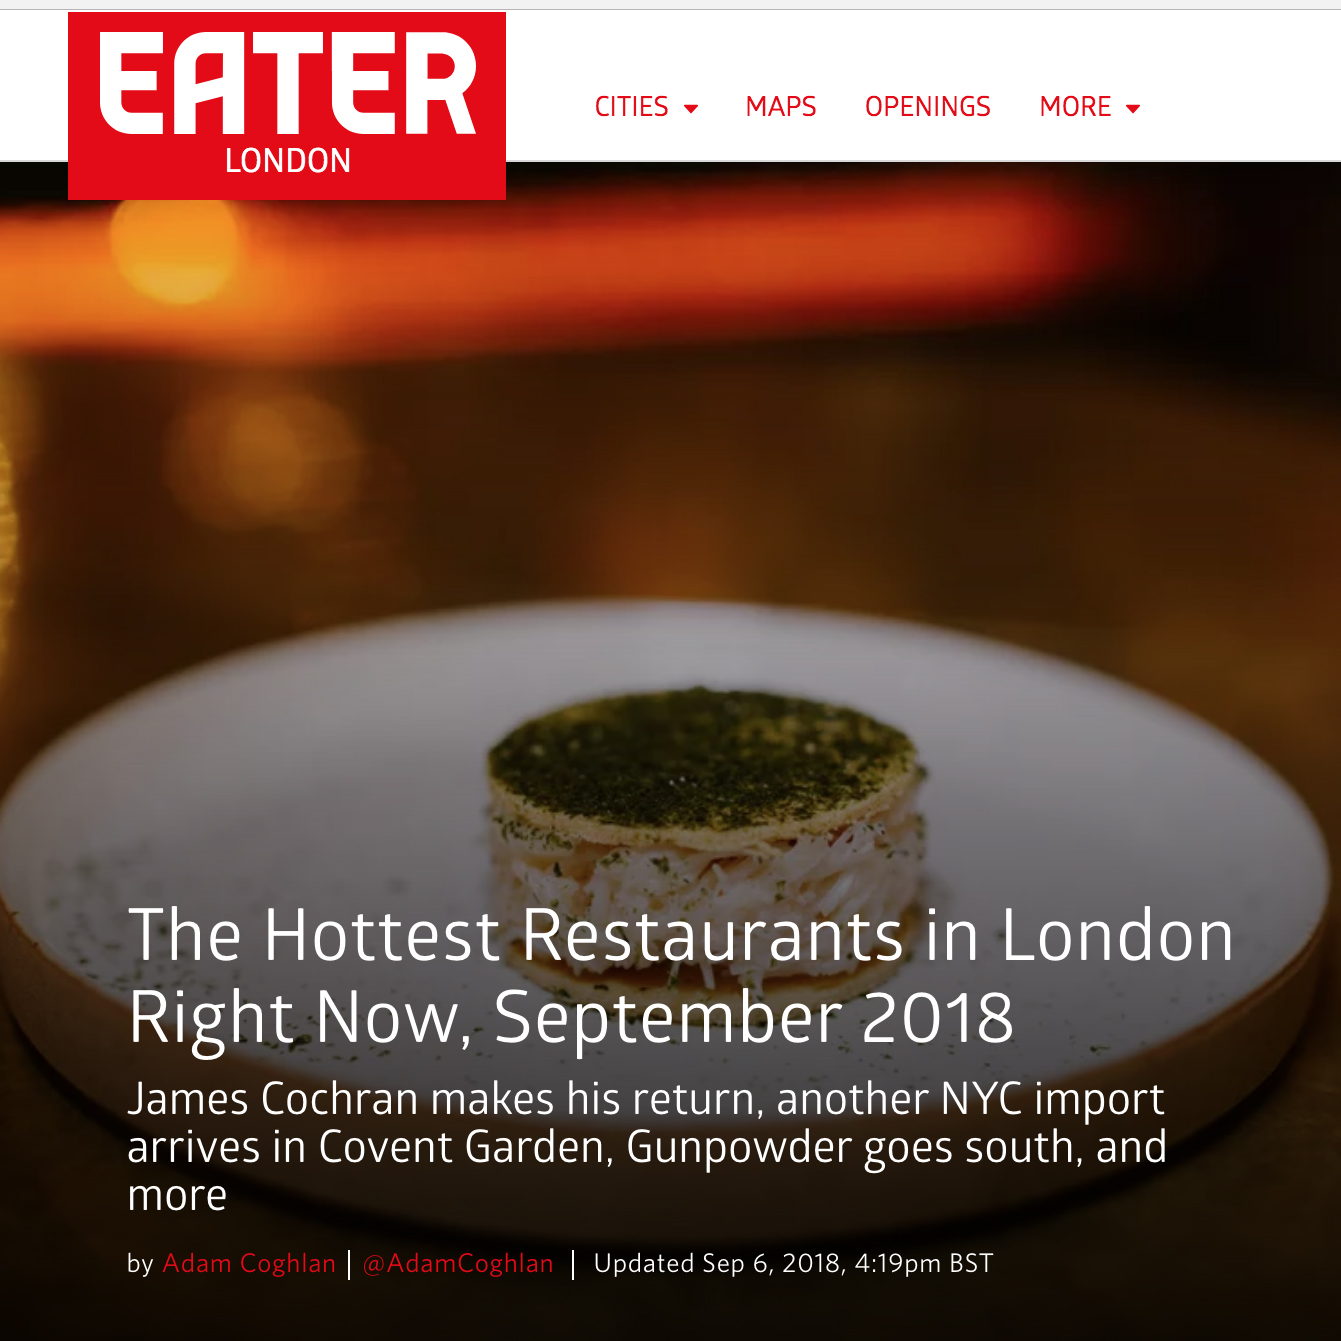 eaterlondon-jamescochran-1251.jpg